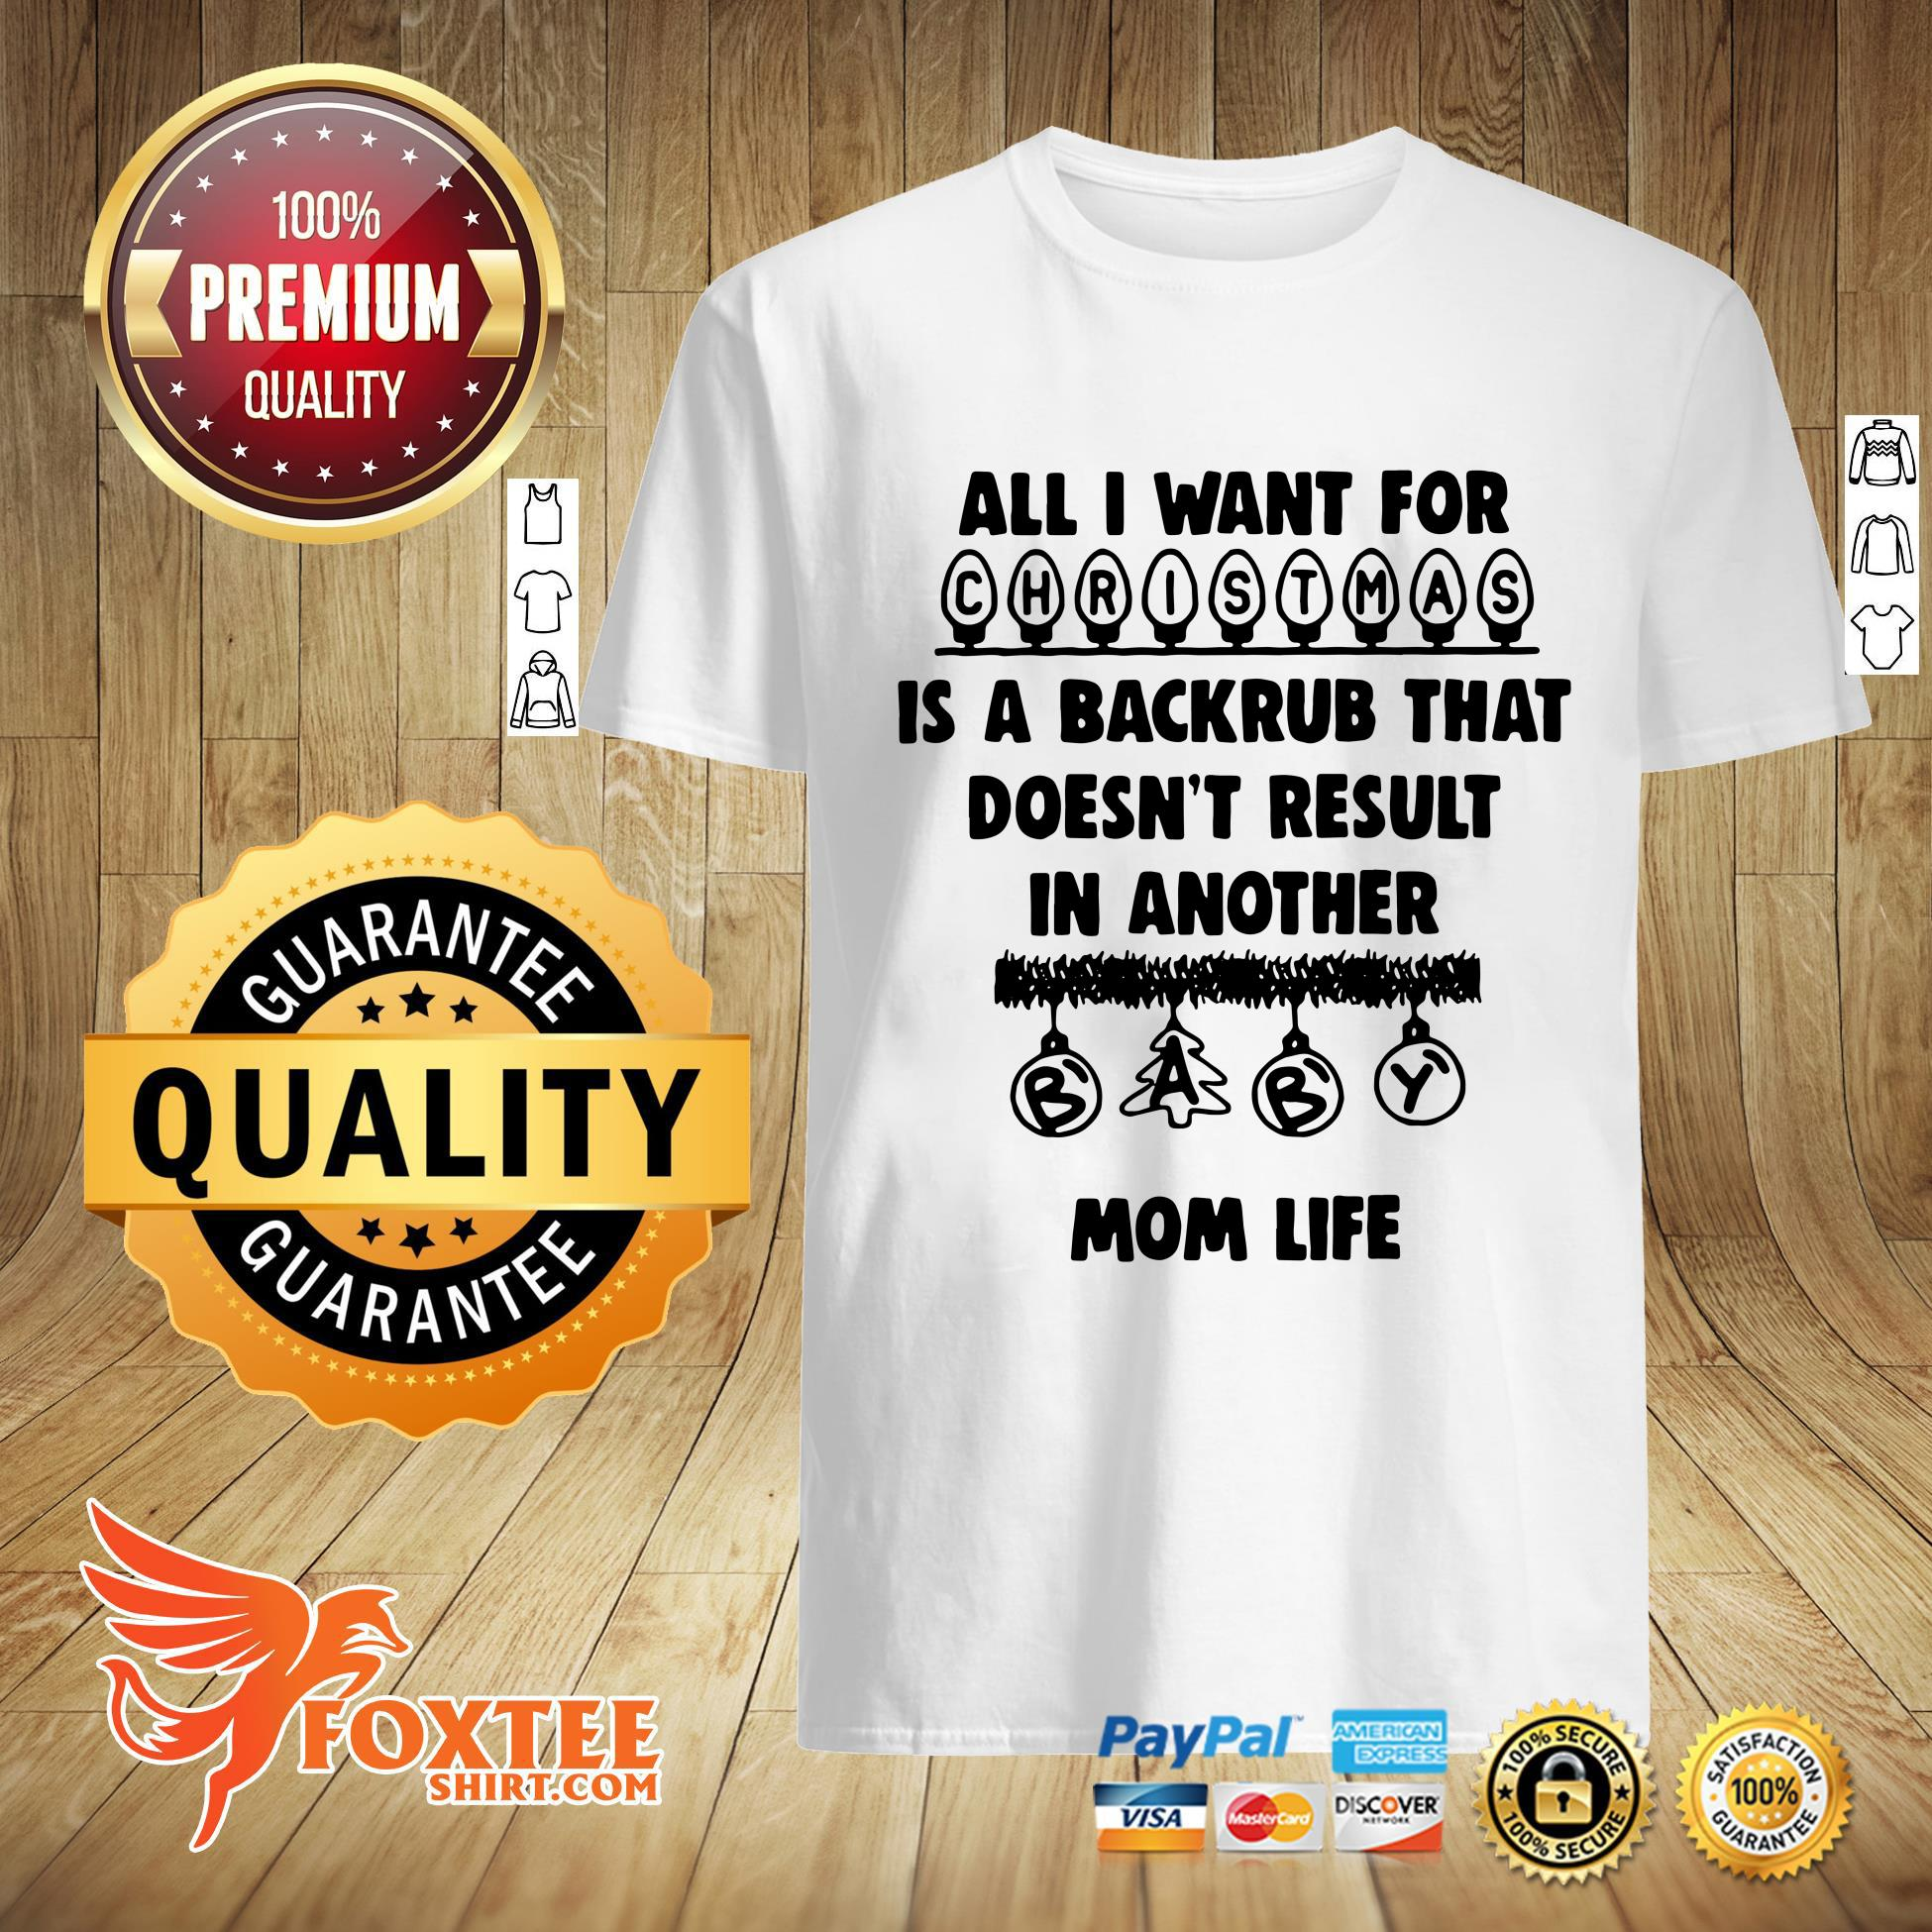 All I Want For Christmas Is A Backrub That Doesn't Result In Another Mom Life Shirt